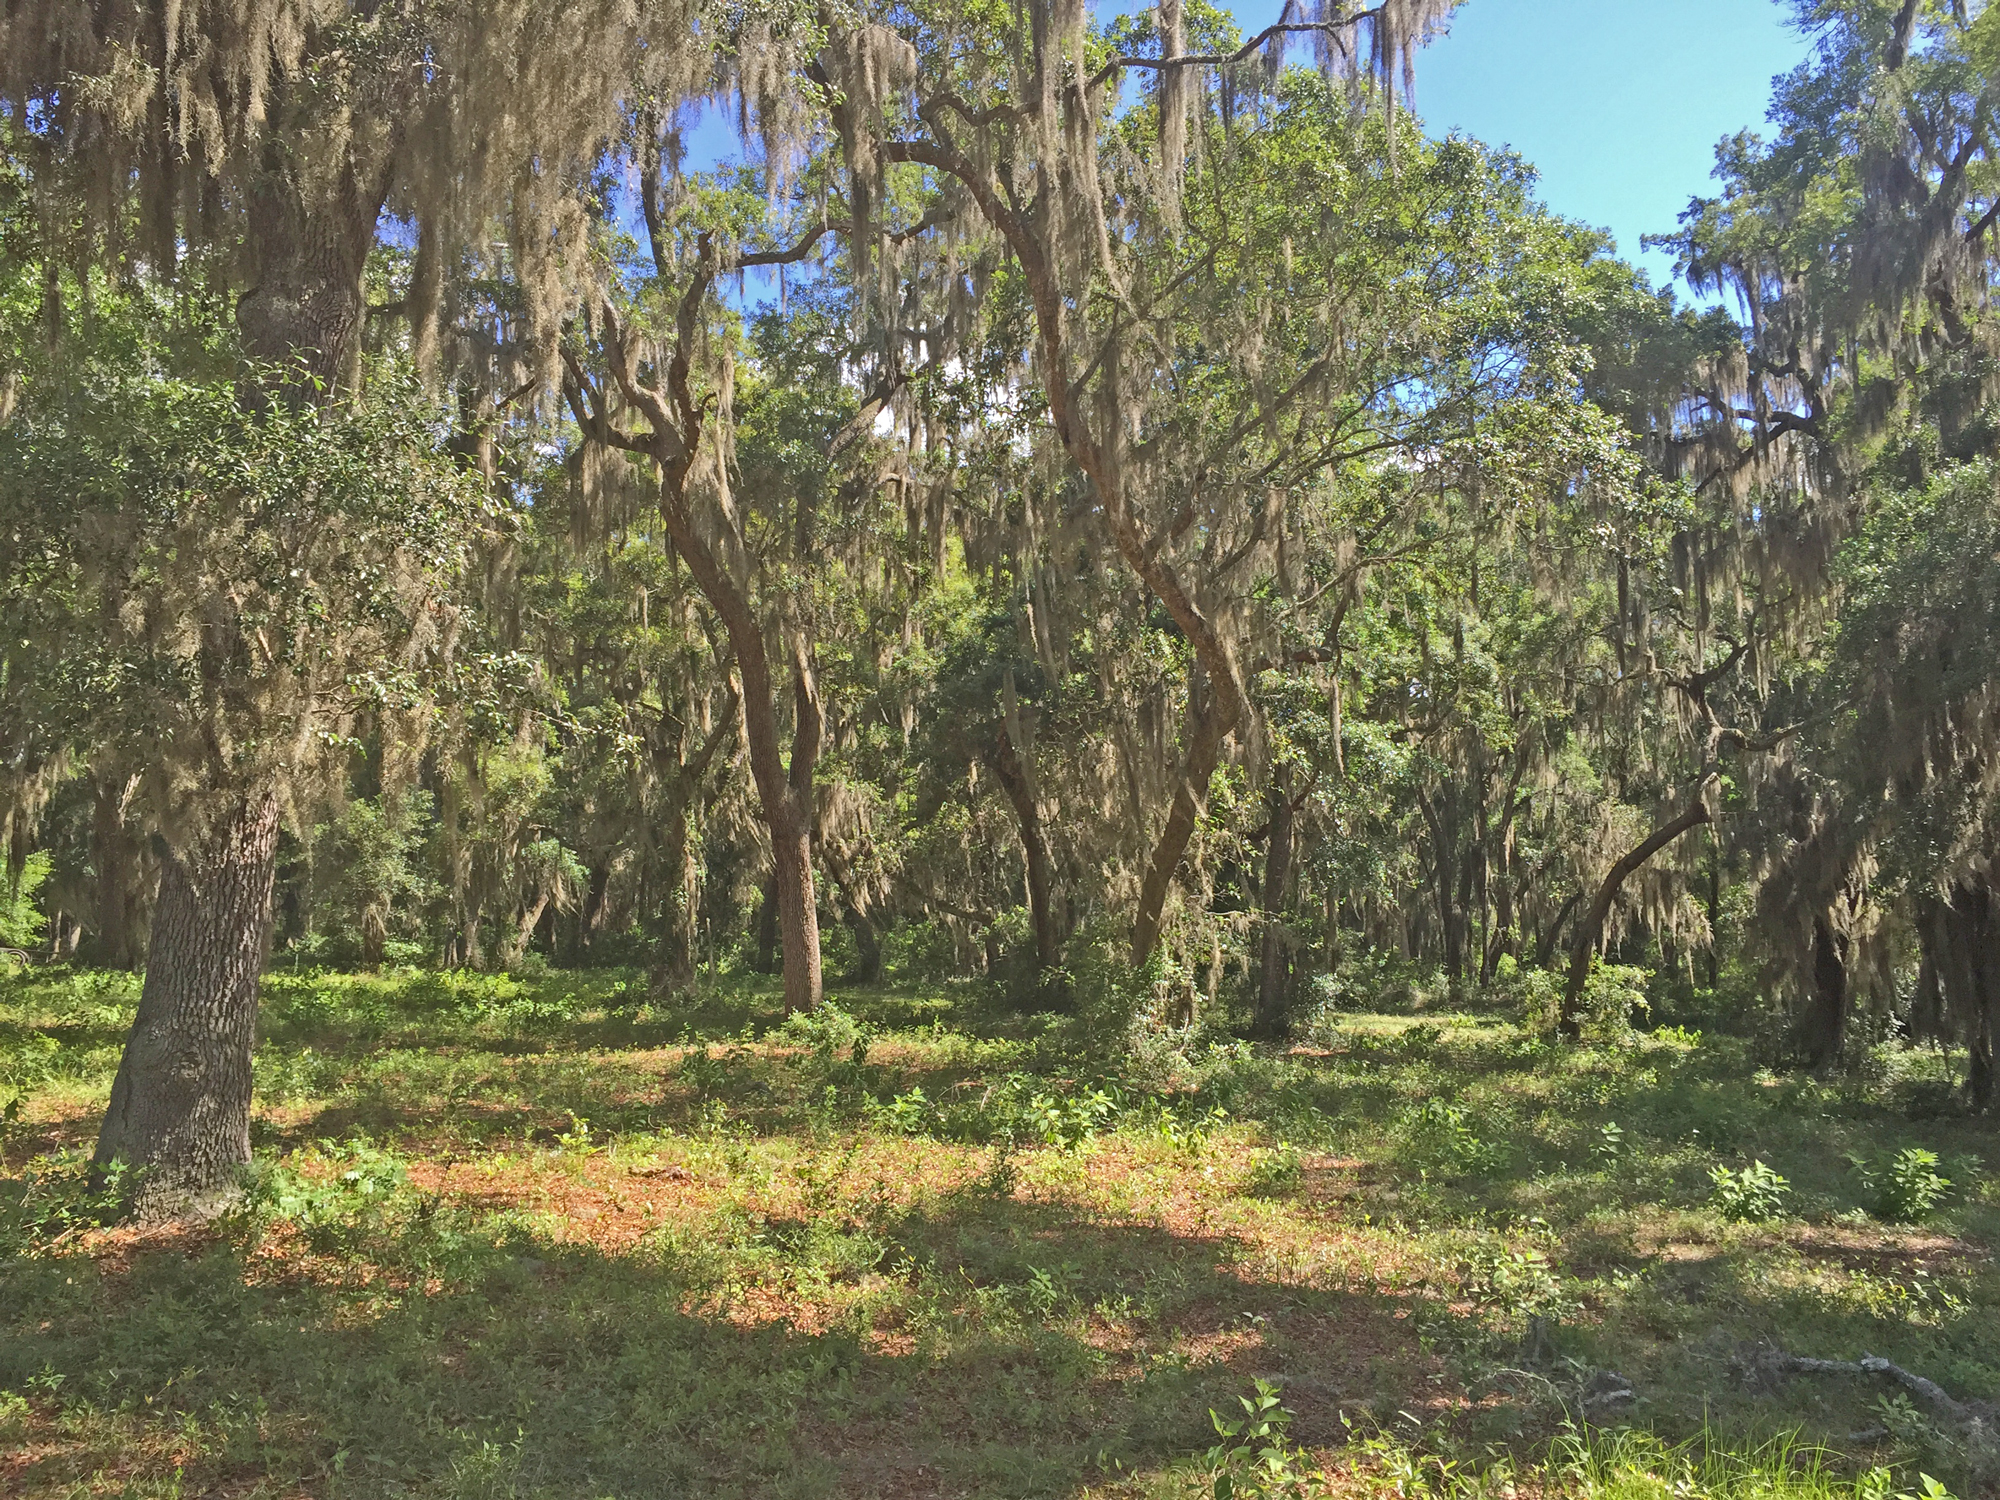 Lot 860 - Offered at $30,000